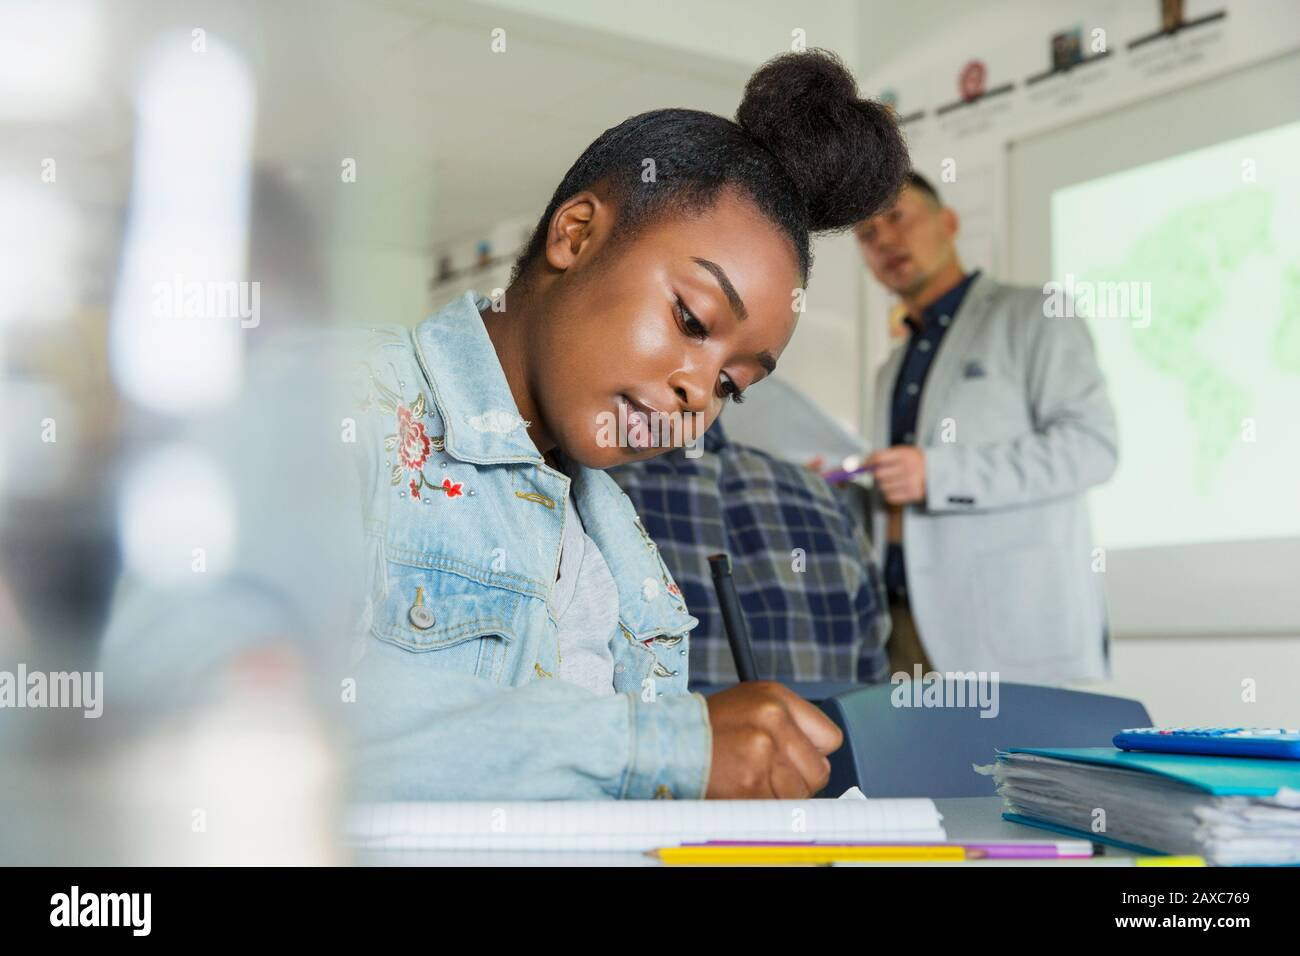 Focused high school girl student studying in classroom Stock Photo